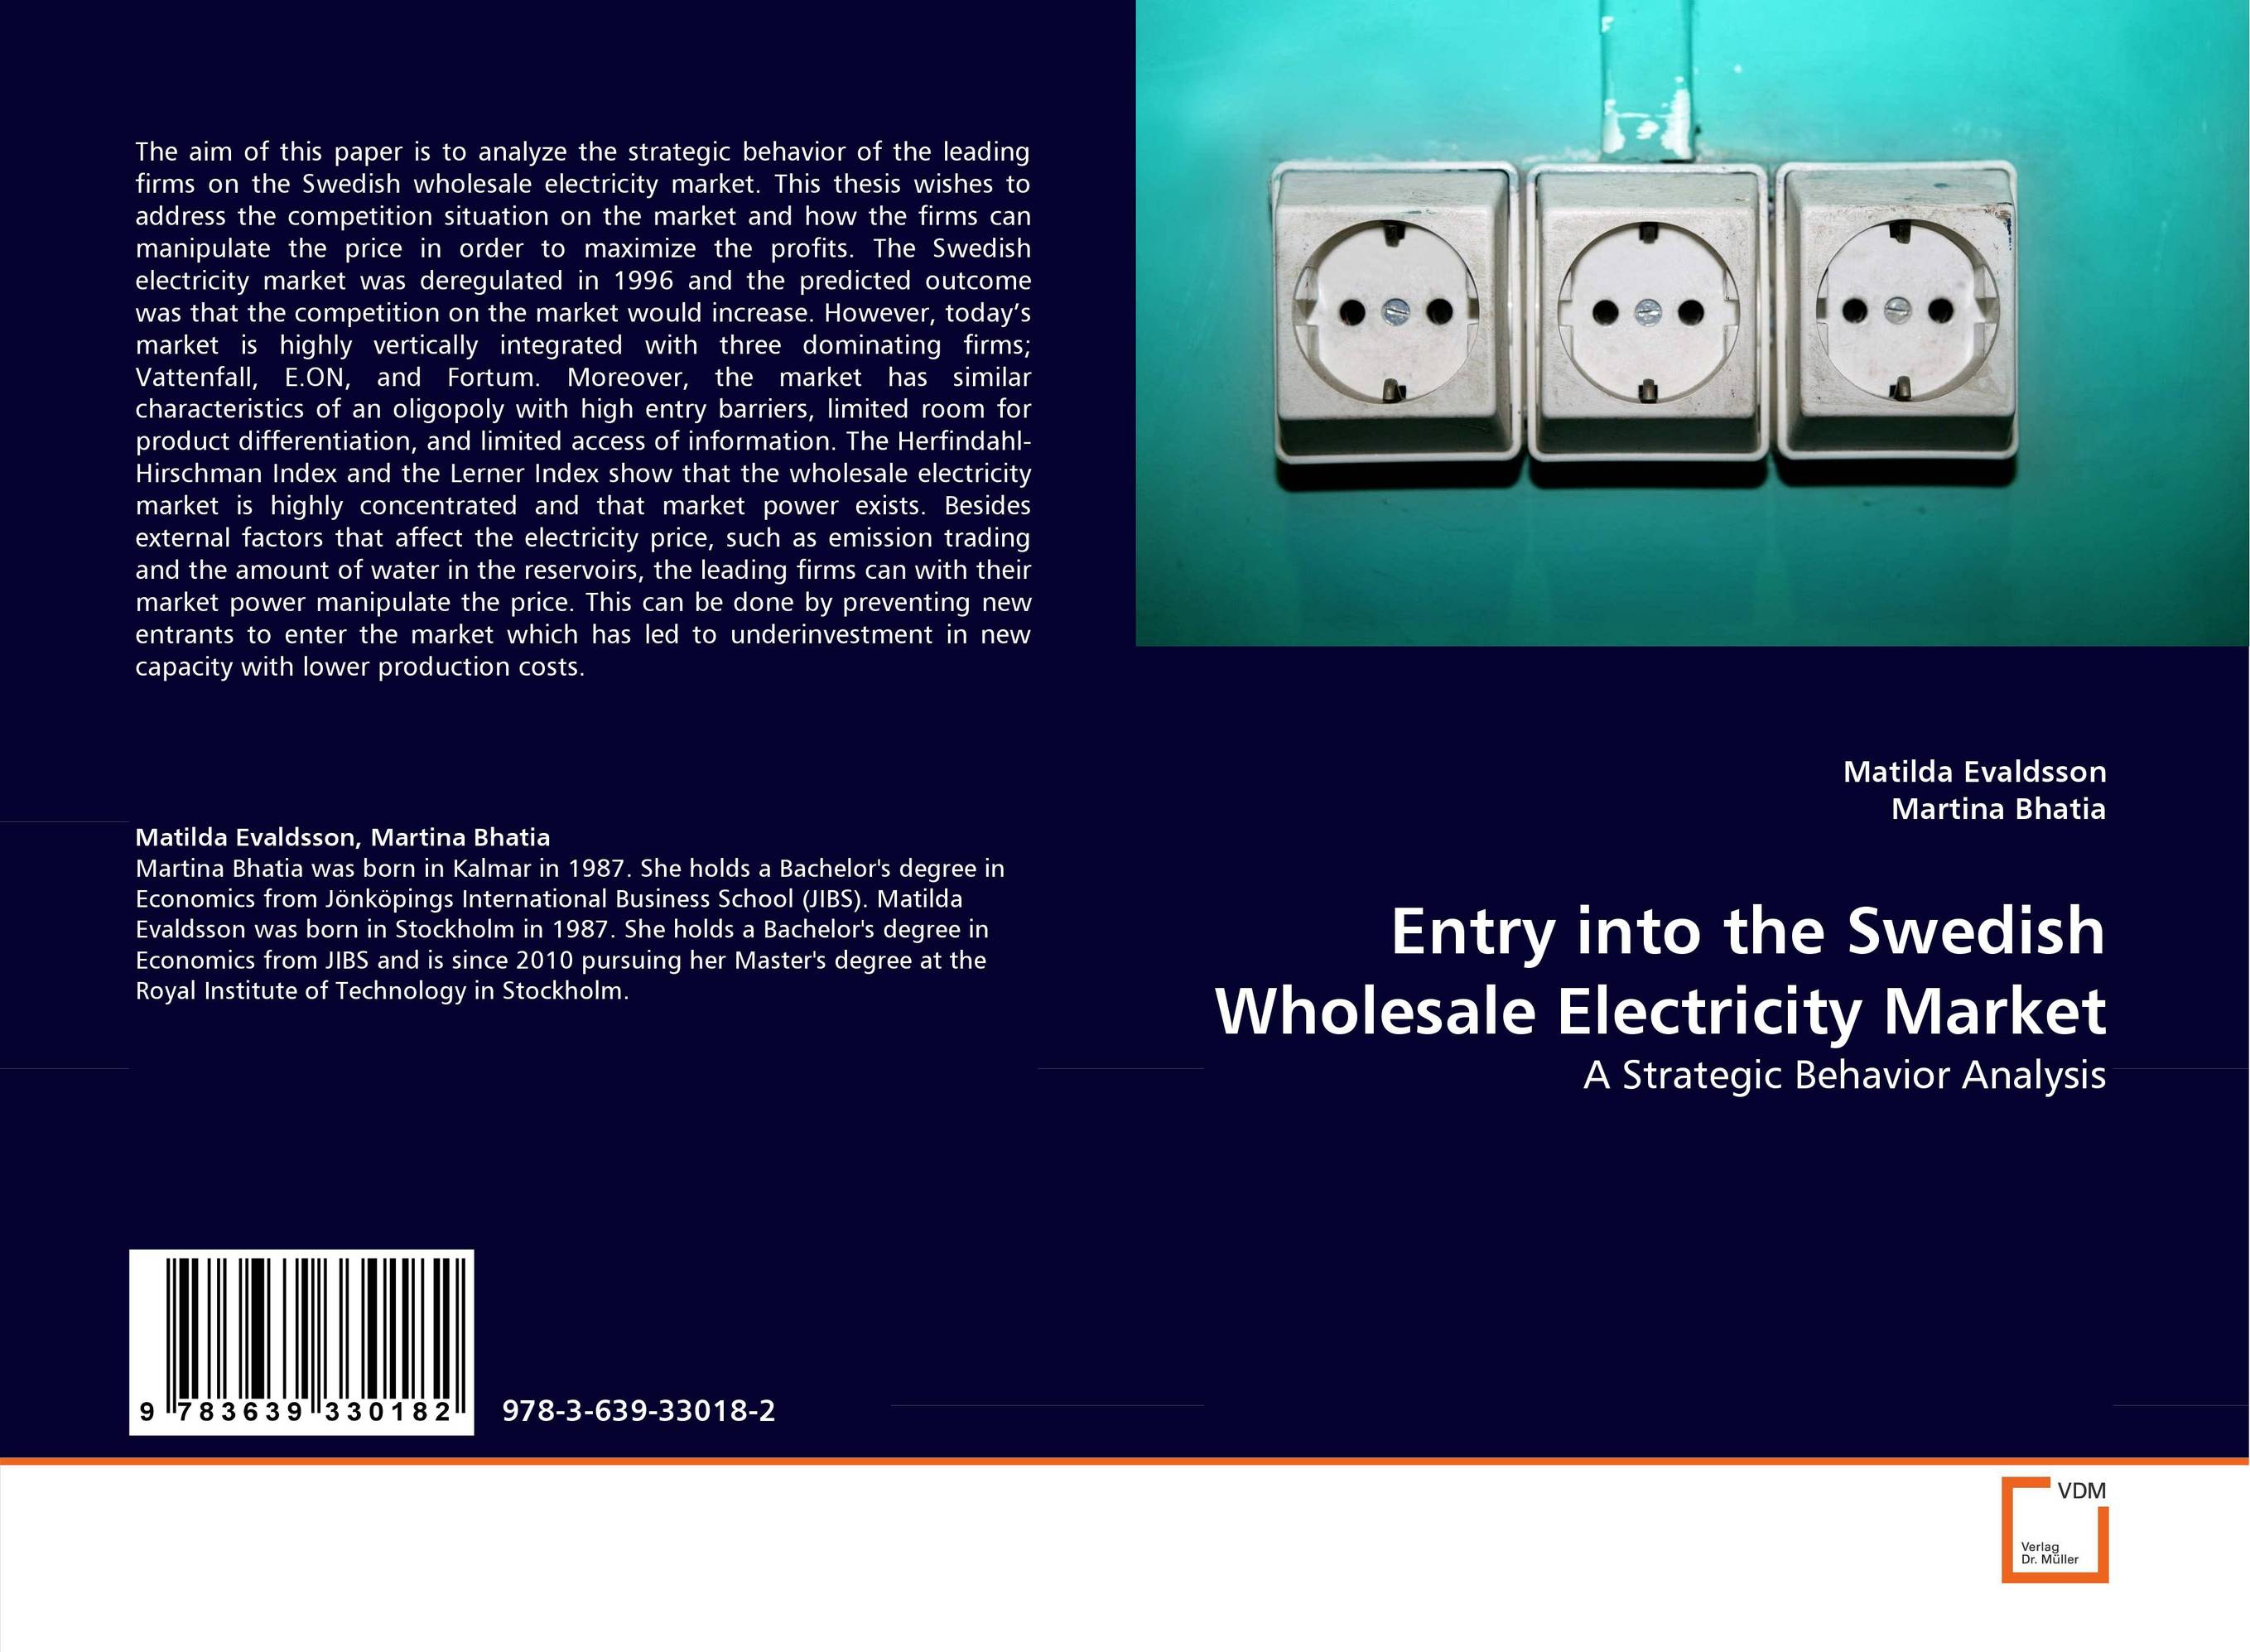 Entry into the Swedish Wholesale Electricity Market